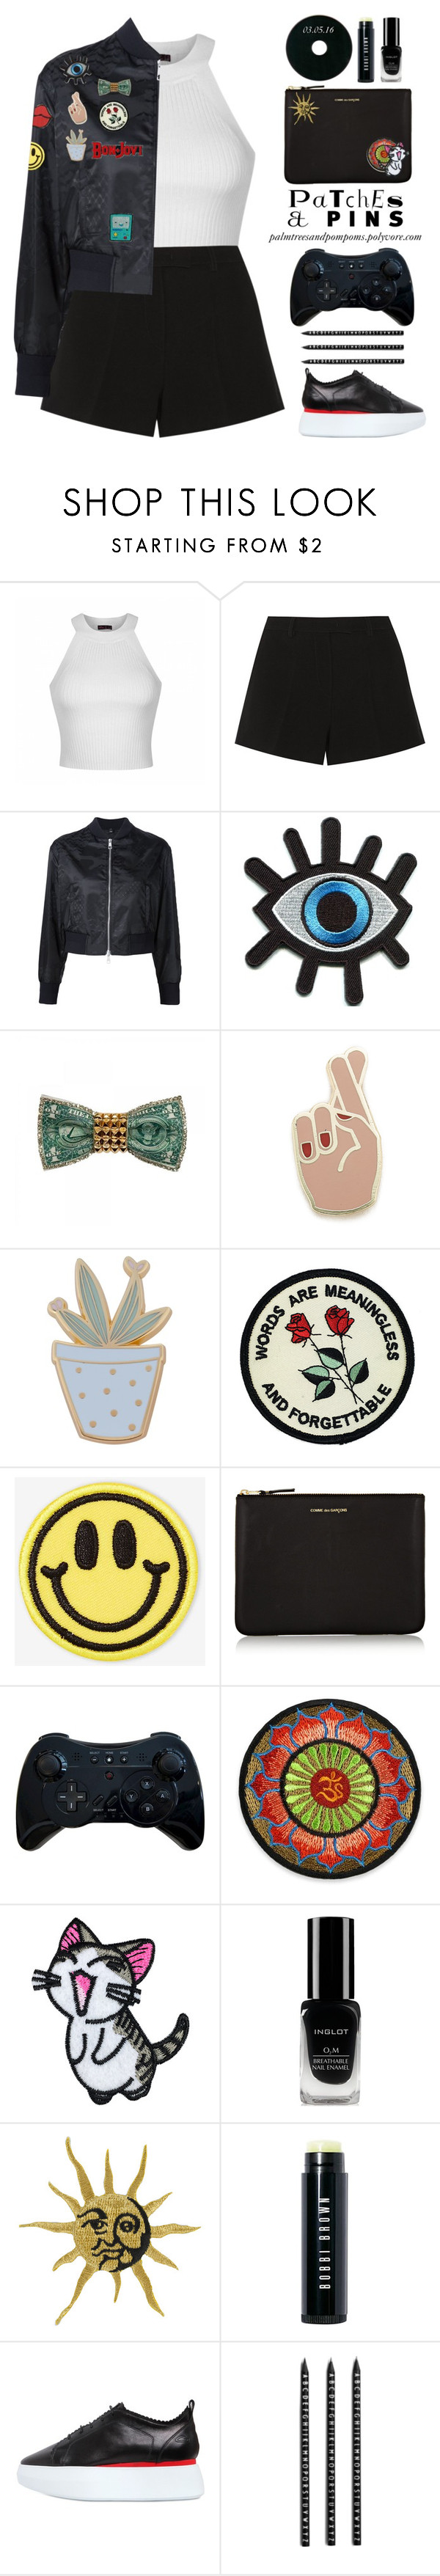 """Patch It, Pin It, Perfect!"" by palmtreesandpompoms ❤ liked on Polyvore featuring Ally Fashion, Emilio Pucci, Neil Barrett, Retrò, Georgia Perry, Des Petits Hauts, Big Bud Press, Comme des Garçons, Inglot and Bobbi Brown Cosmetics"